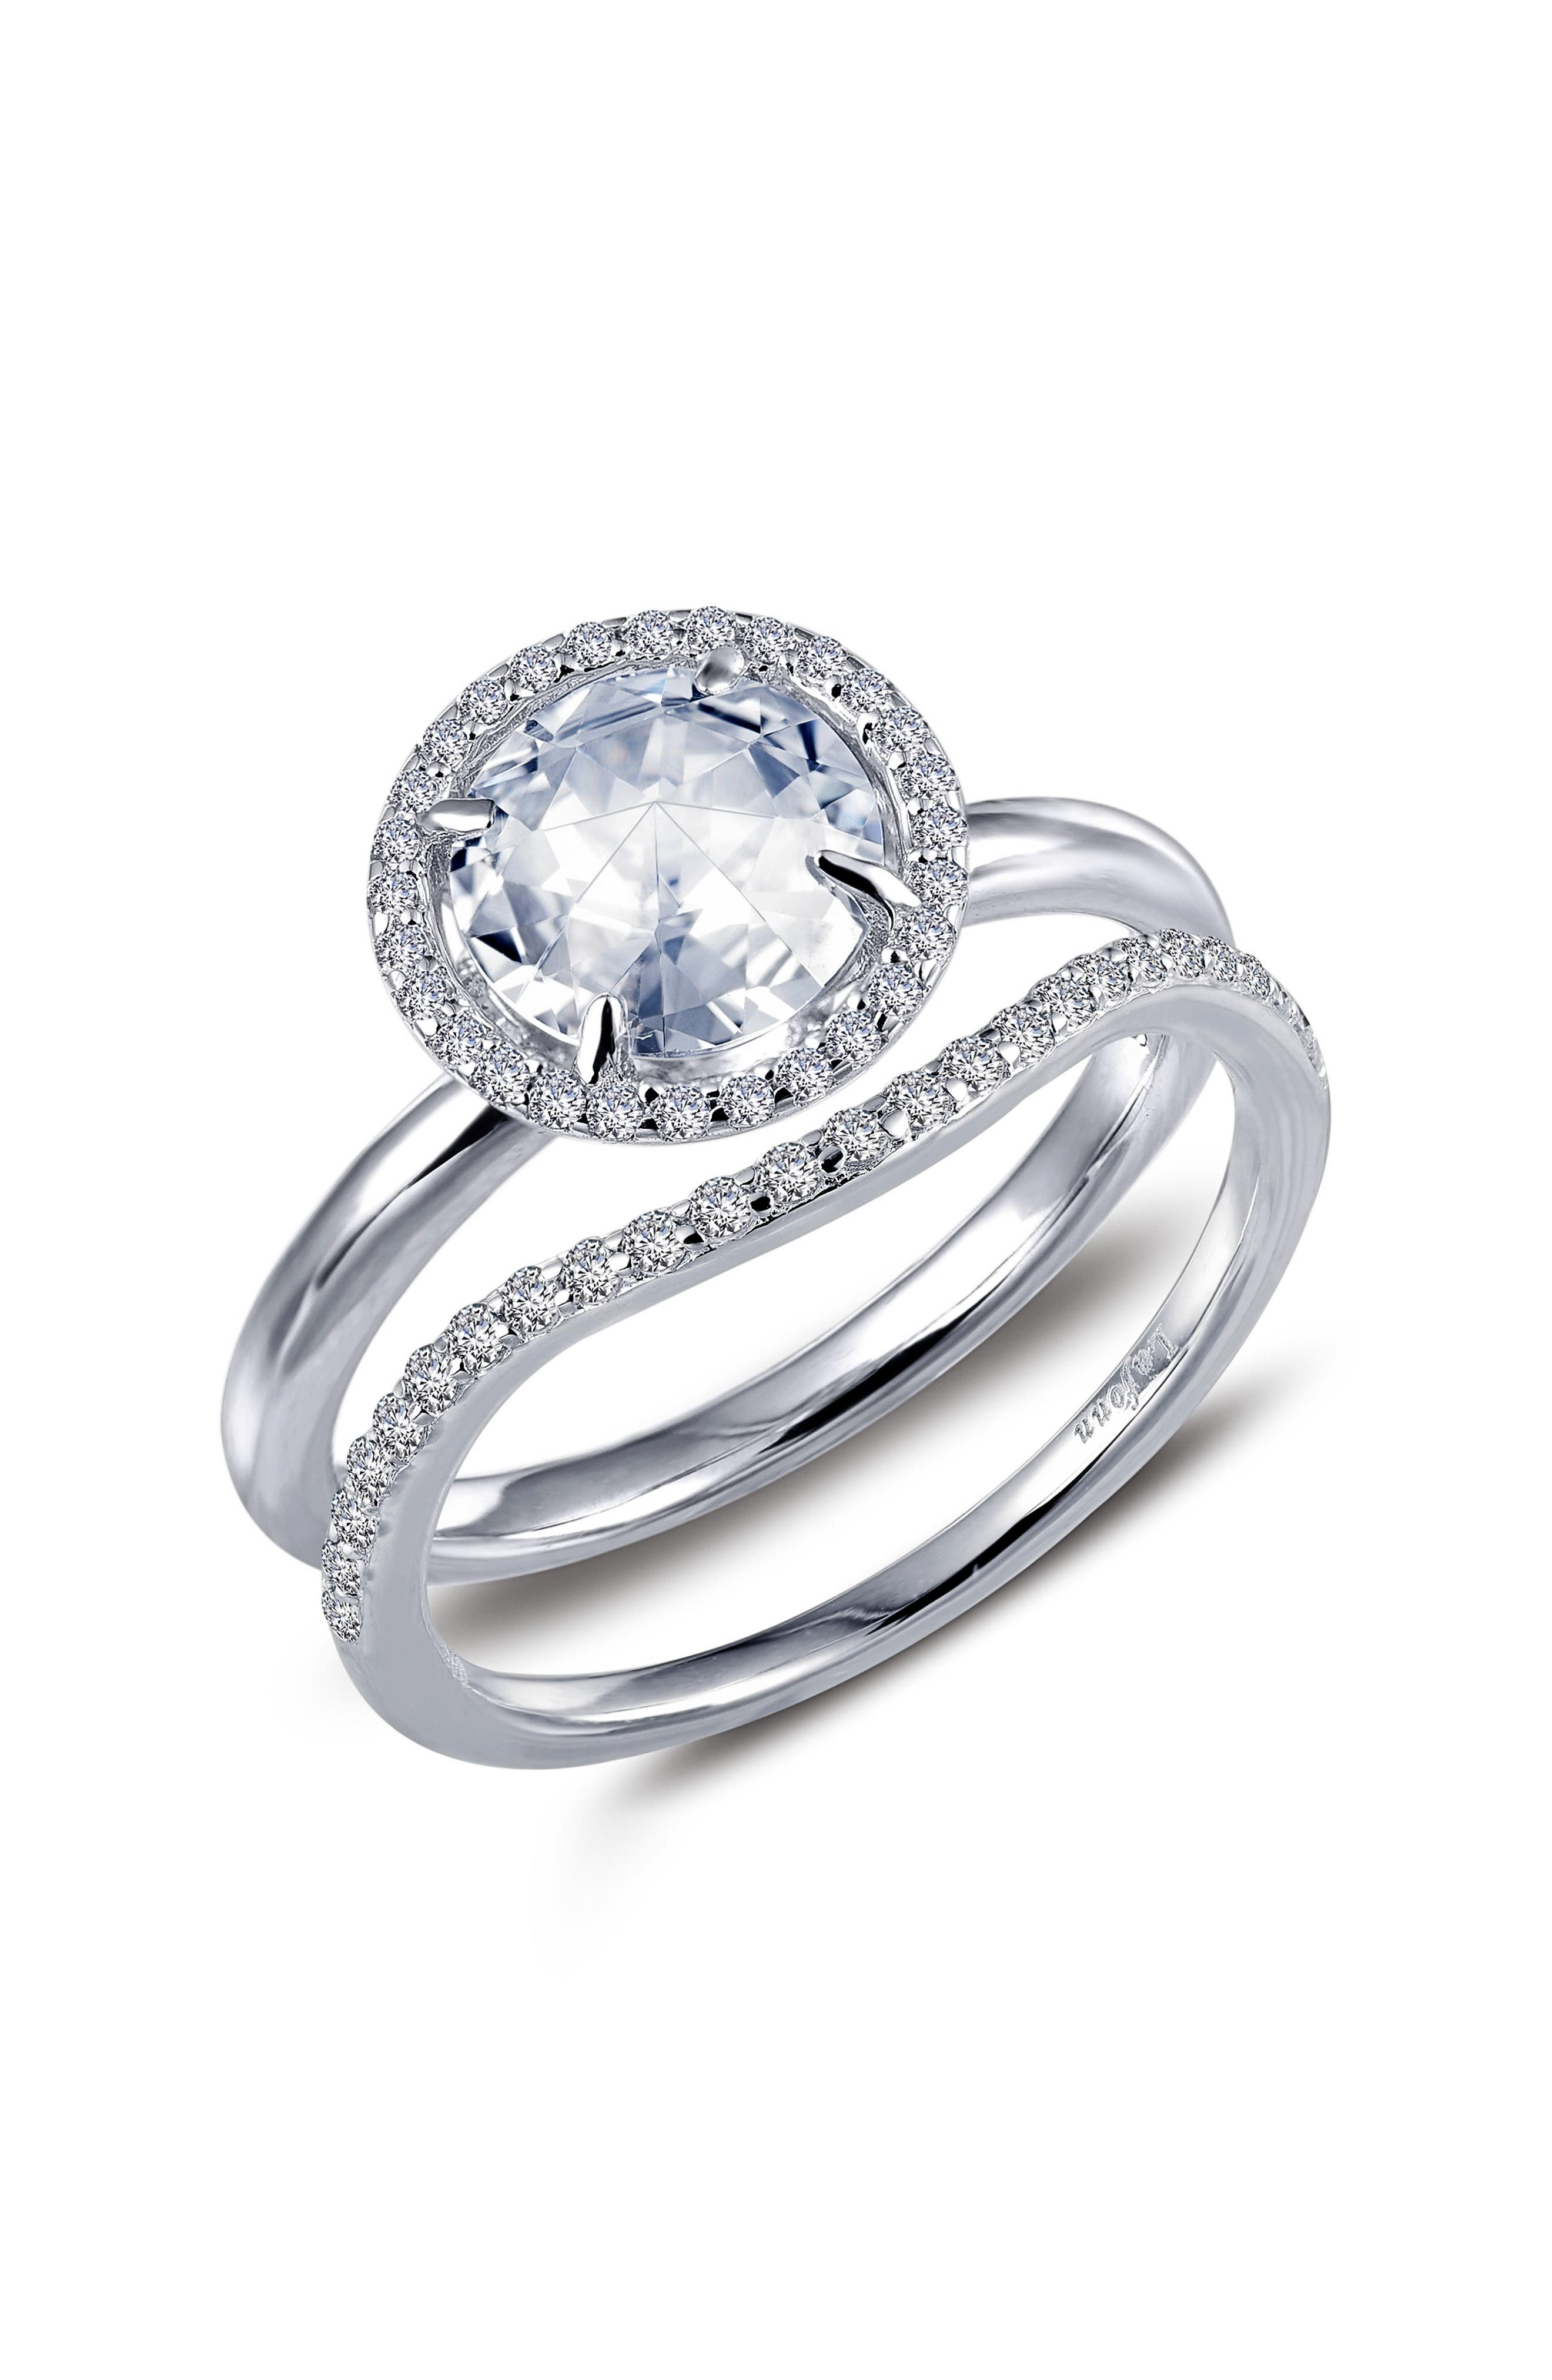 Rose Cut Simulated Diamond Ring & Band,                             Main thumbnail 1, color,                             040